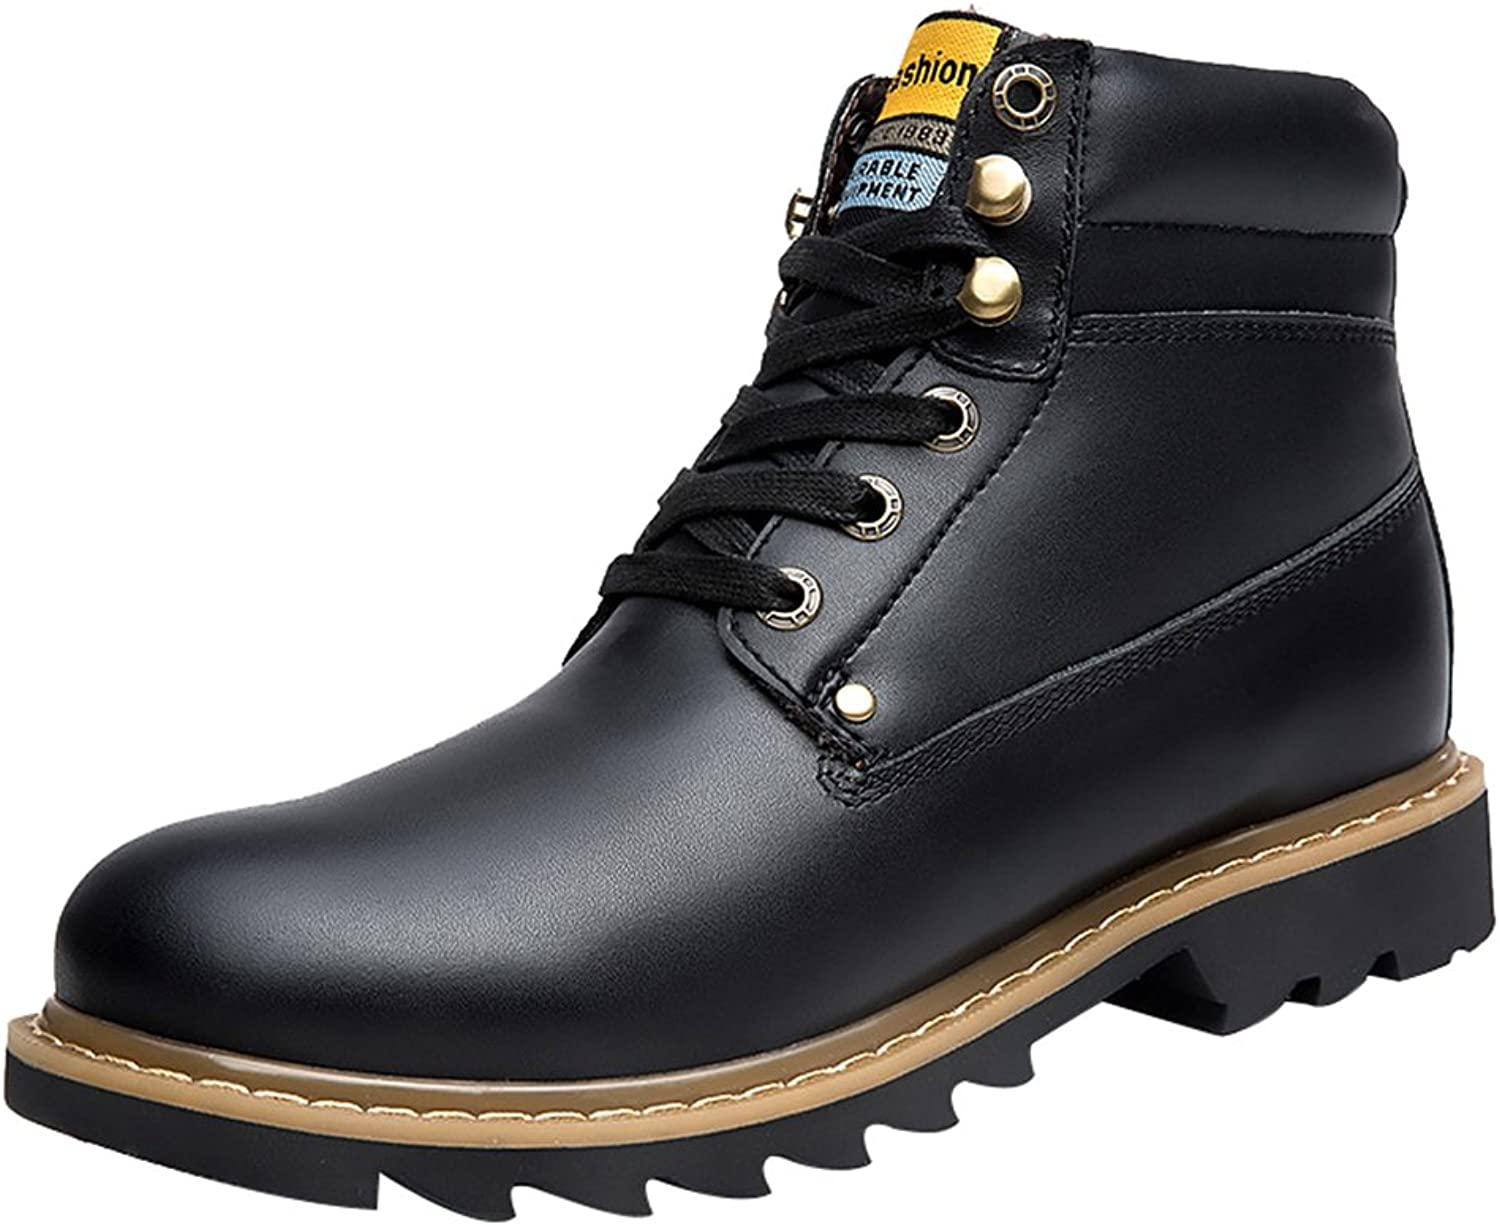 Salabobo QYY-118 New Mens Casual Leather Leisure Comfy Warm Wool High Top Working Boots Black UK Size6